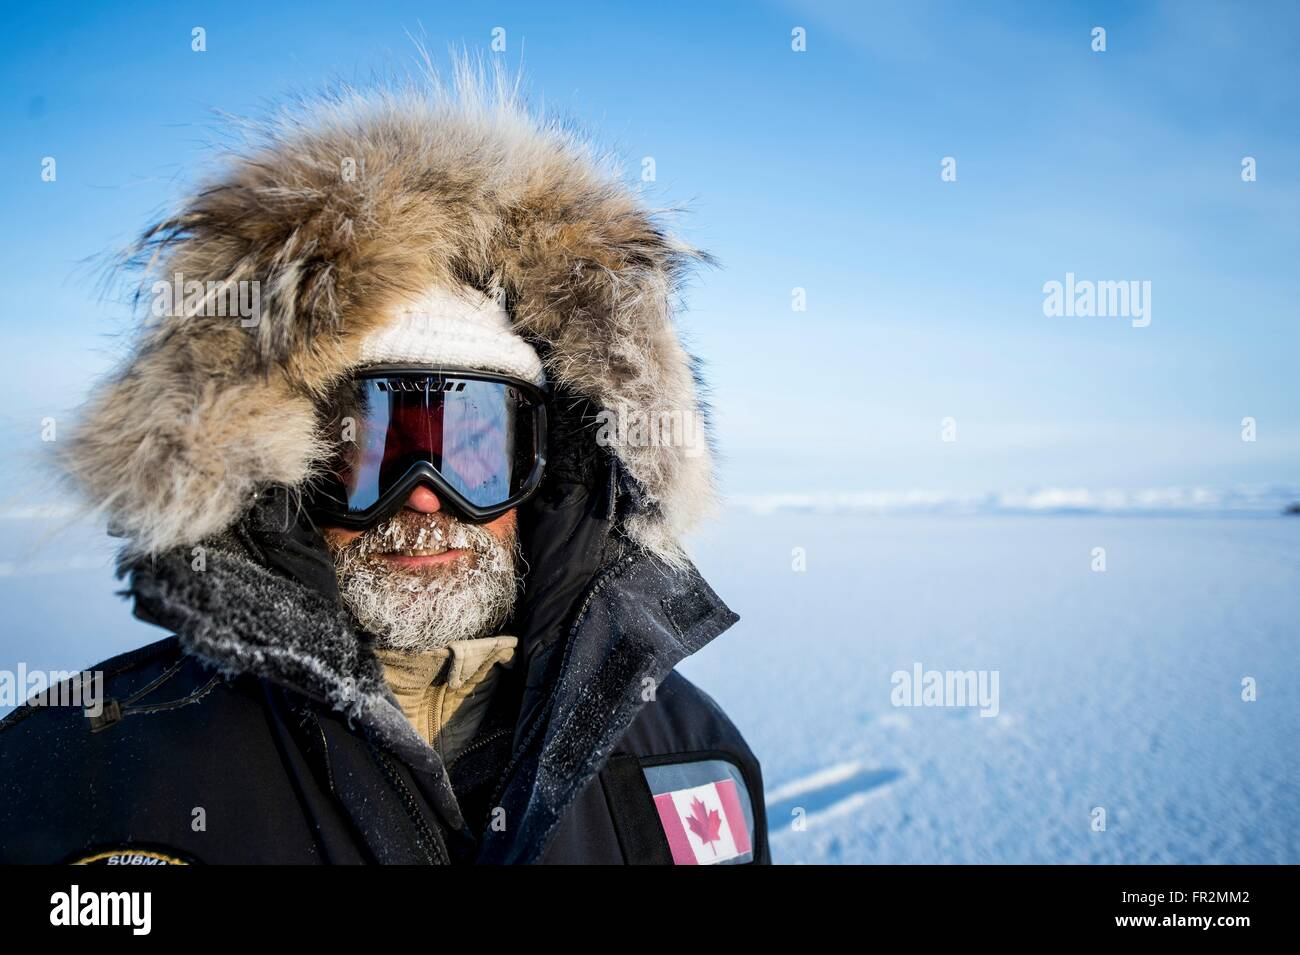 A Member Of The Canadian Research Team Bundled Up In Extreme Cold Clothing At The Multi National Ice Camp Sargo Build For Icex 2016 Training Exercise March